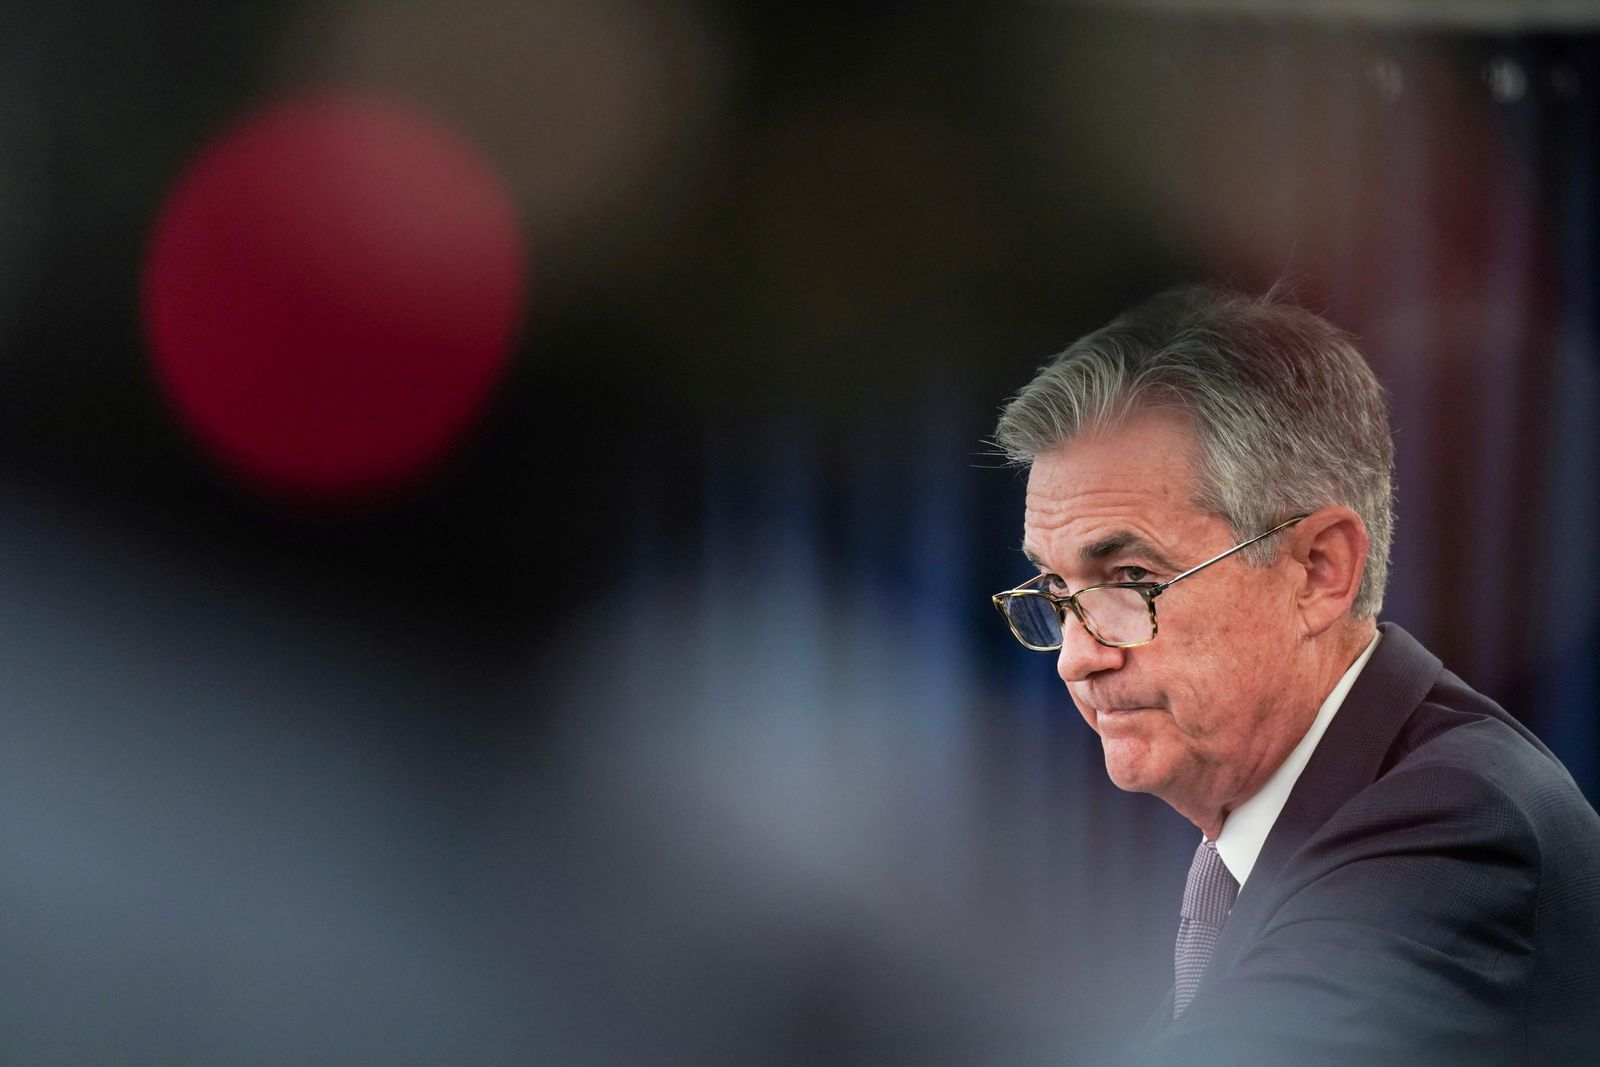 Federal Reserve Chair Jerome Powell holds a News Conference